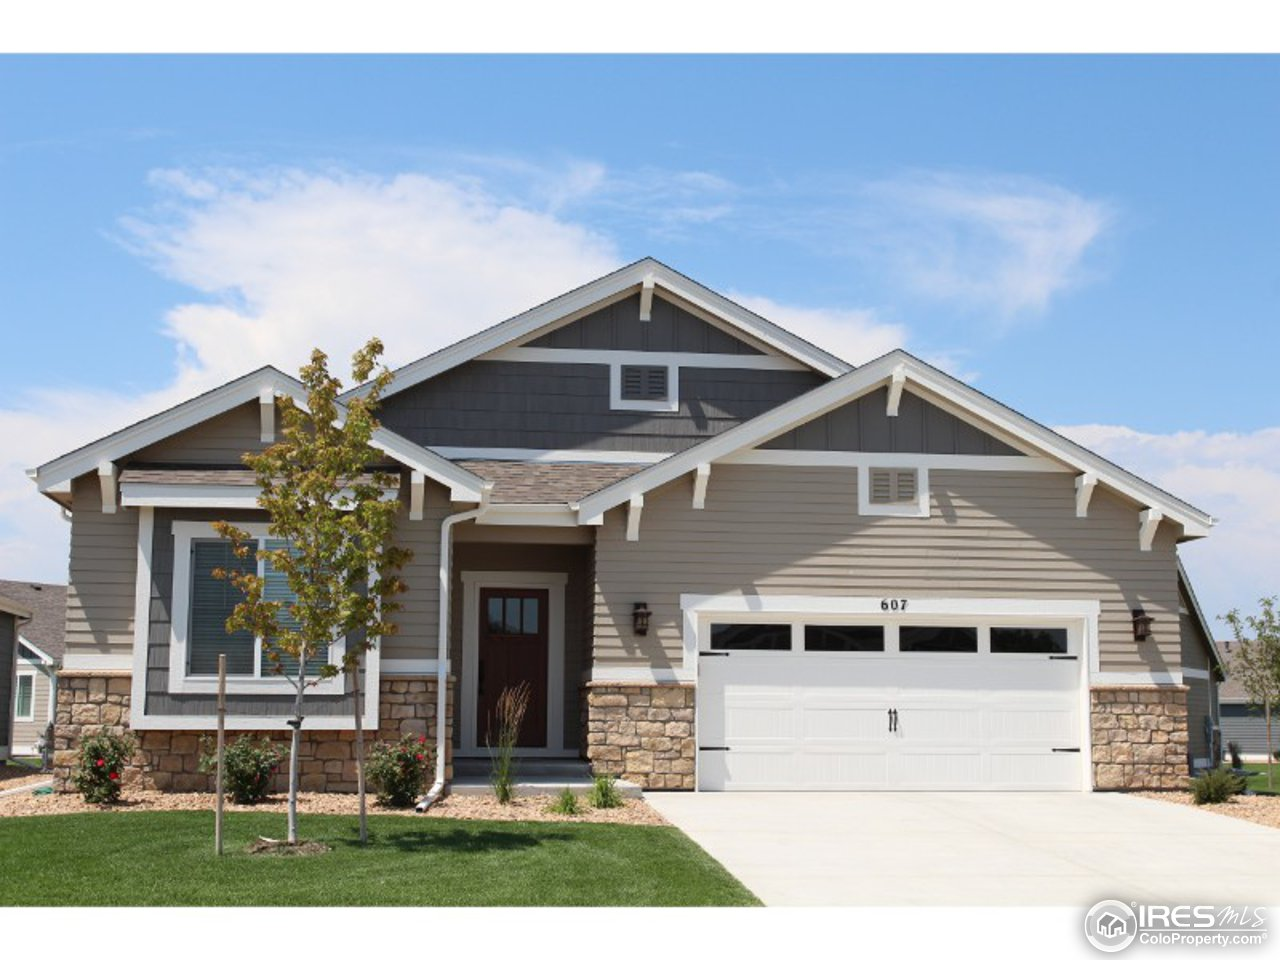 607 N 78th Ave, Greeley, CO 80634